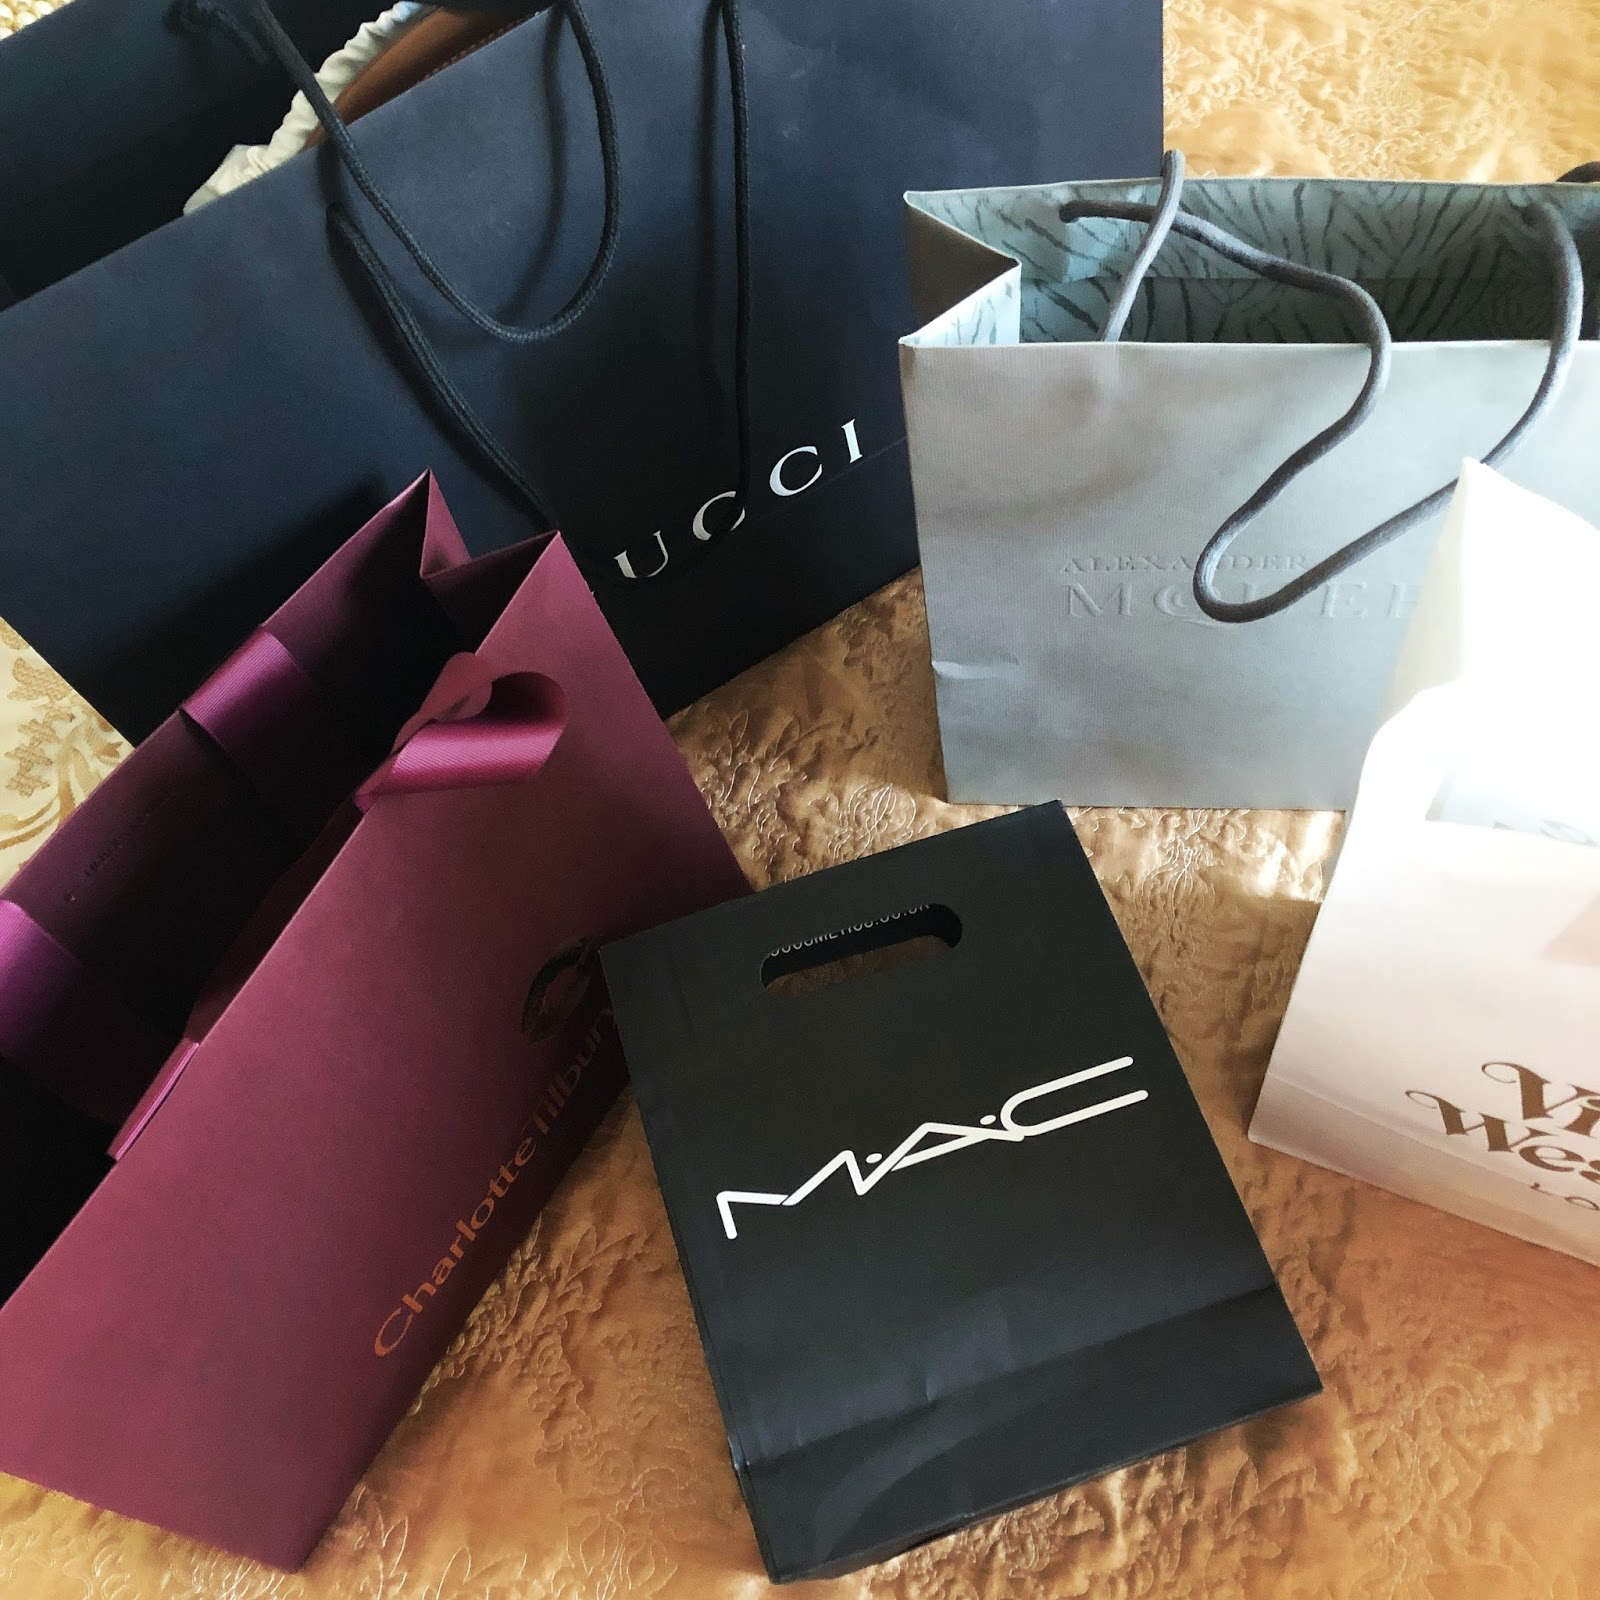 Today I M Sharing With You Our Escapades And Haul From The World Famous Luxury Outlet Venue Bicester Village Located In Oxfordshire England As Type This